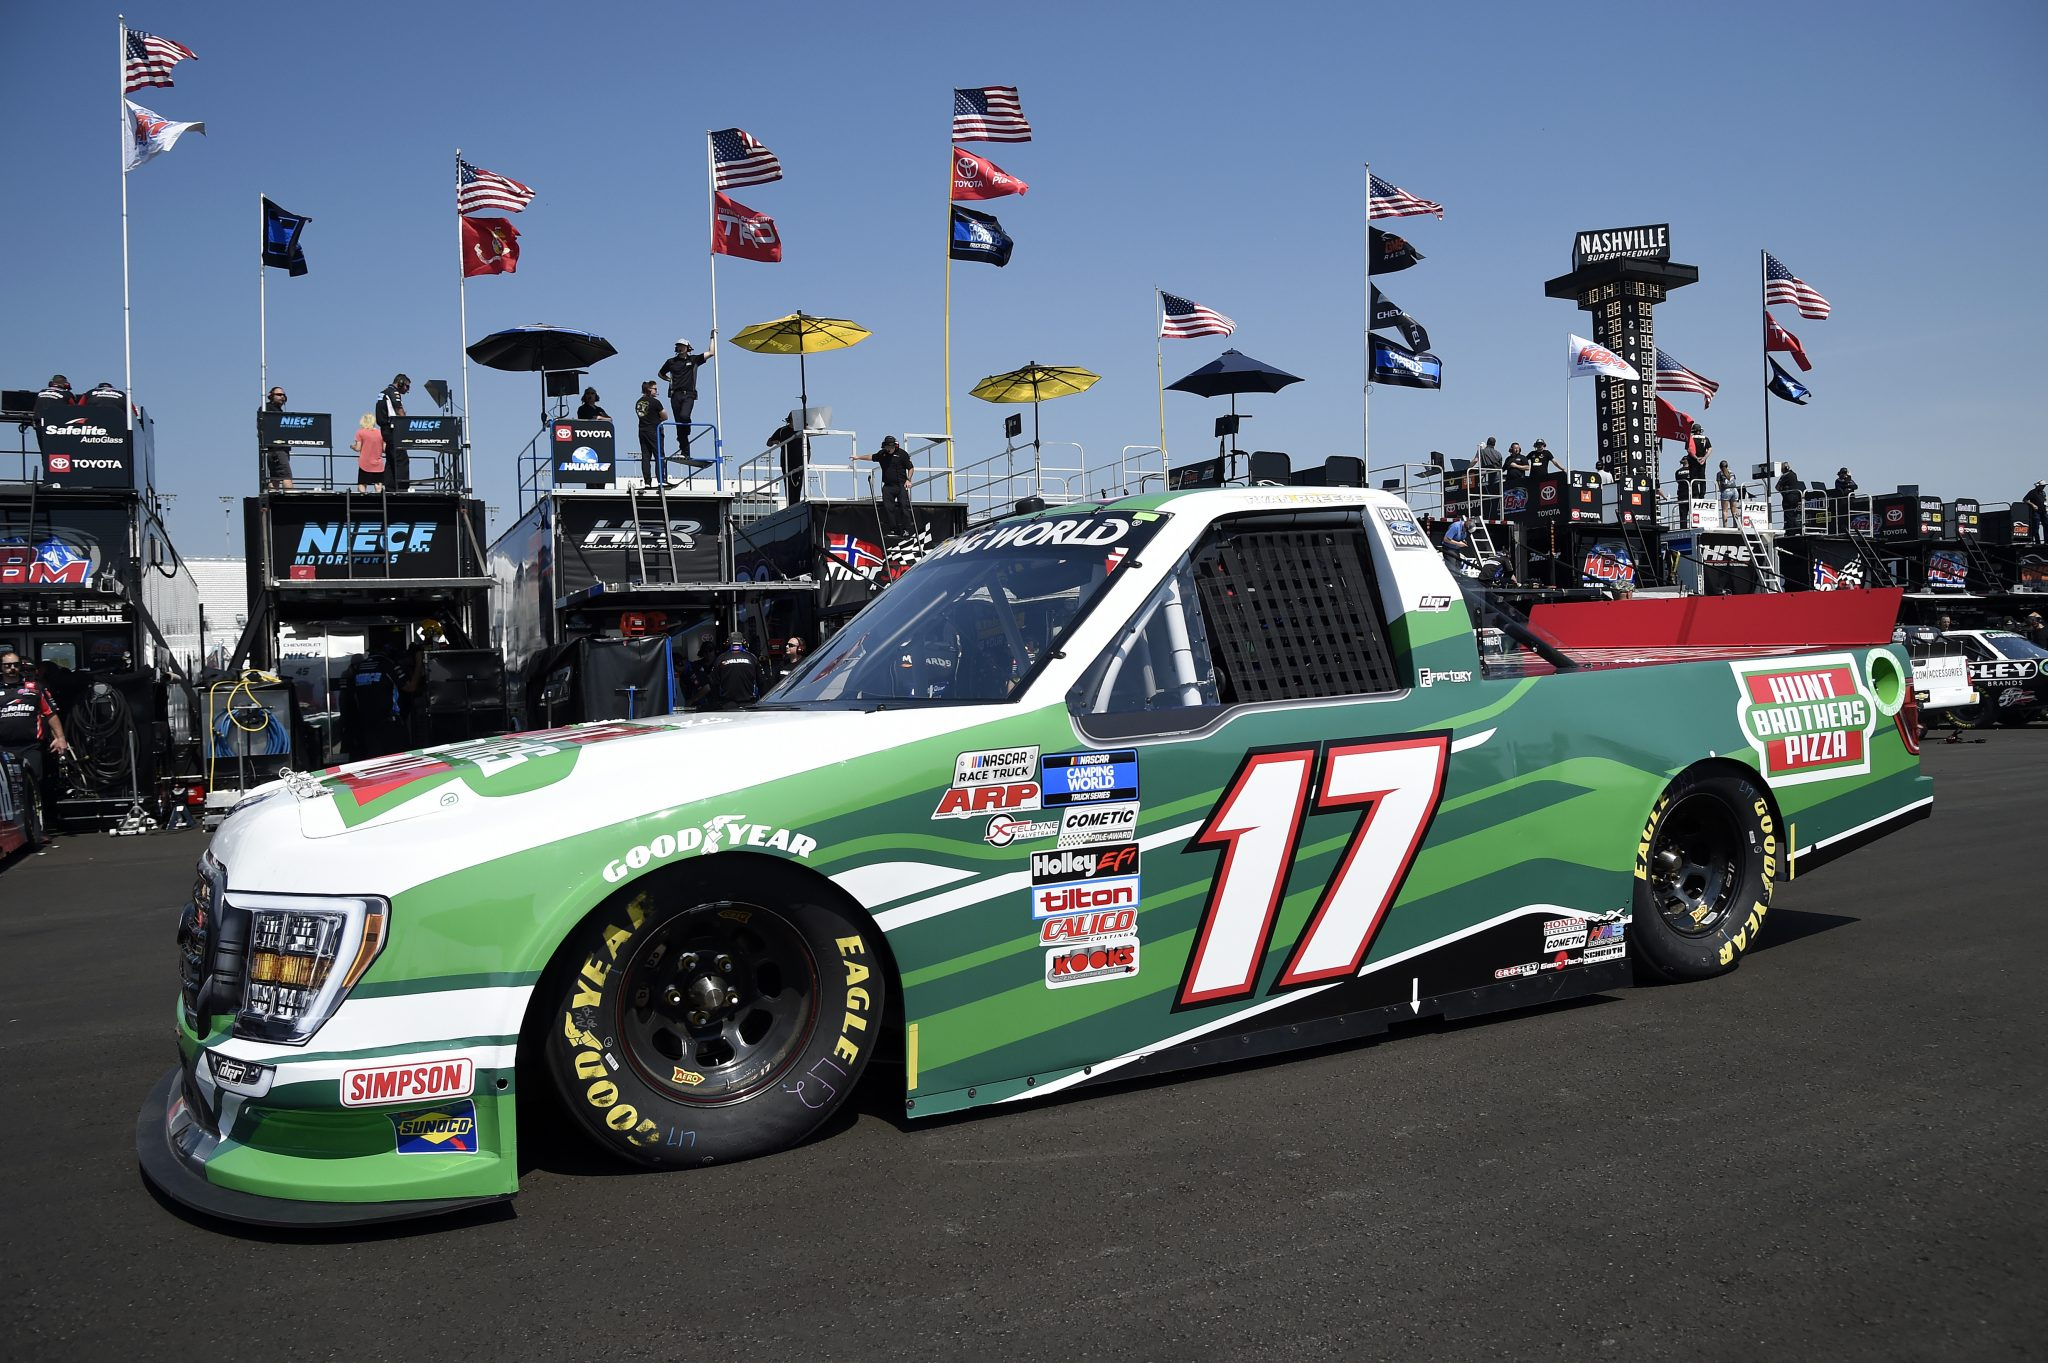 LEBANON, TENNESSEE - JUNE 18: Ryan Preece, driver of the #17 Hunt Brothers Pizza Ford, drives in the garage area during practice for the NASCAR Camping World Truck Series Rackley Roofing 200 at Nashville Superspeedway on June 18, 2021 in Lebanon, Tennessee. (Photo by Logan Riely/Getty Images) | Getty Images